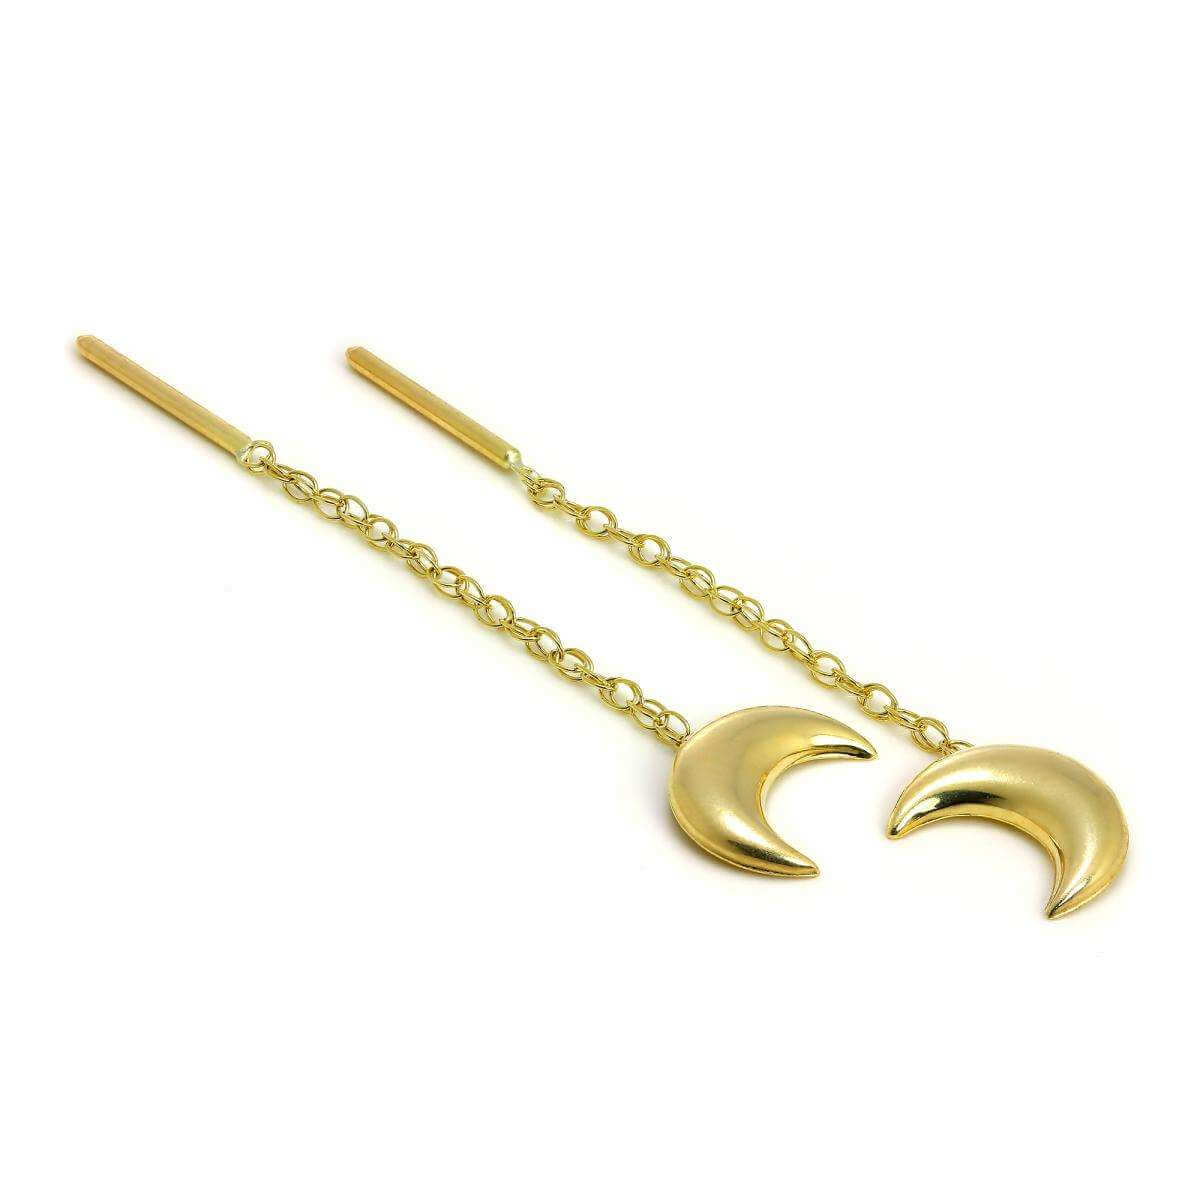 9ct Gold Crescent Moon Pull Through Chain Earrings